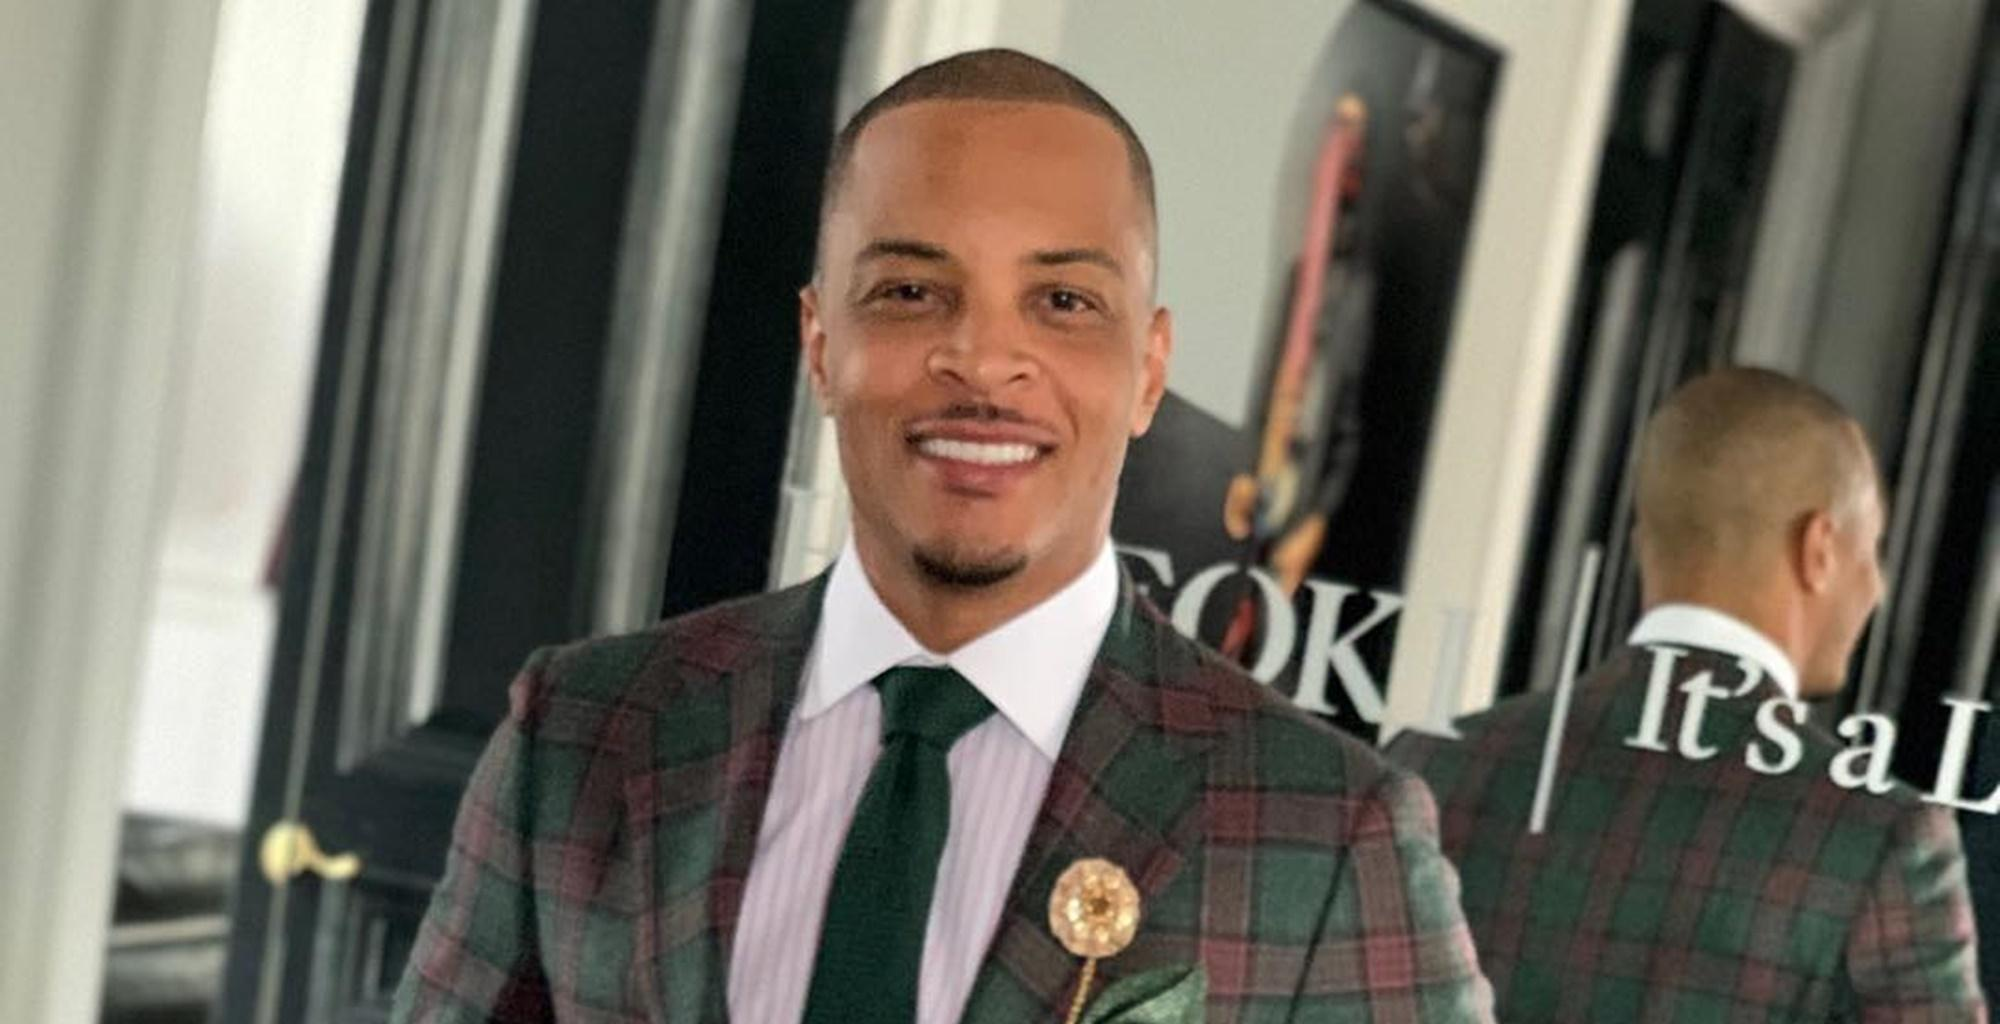 T.I. Leaves Little To Tiny Harris' Imagination With Custom Grey Joggers Picture -- Fans Say They Now Understand Why She Decided To Stay With Him After The Bernice Burgos Cheating Scandal